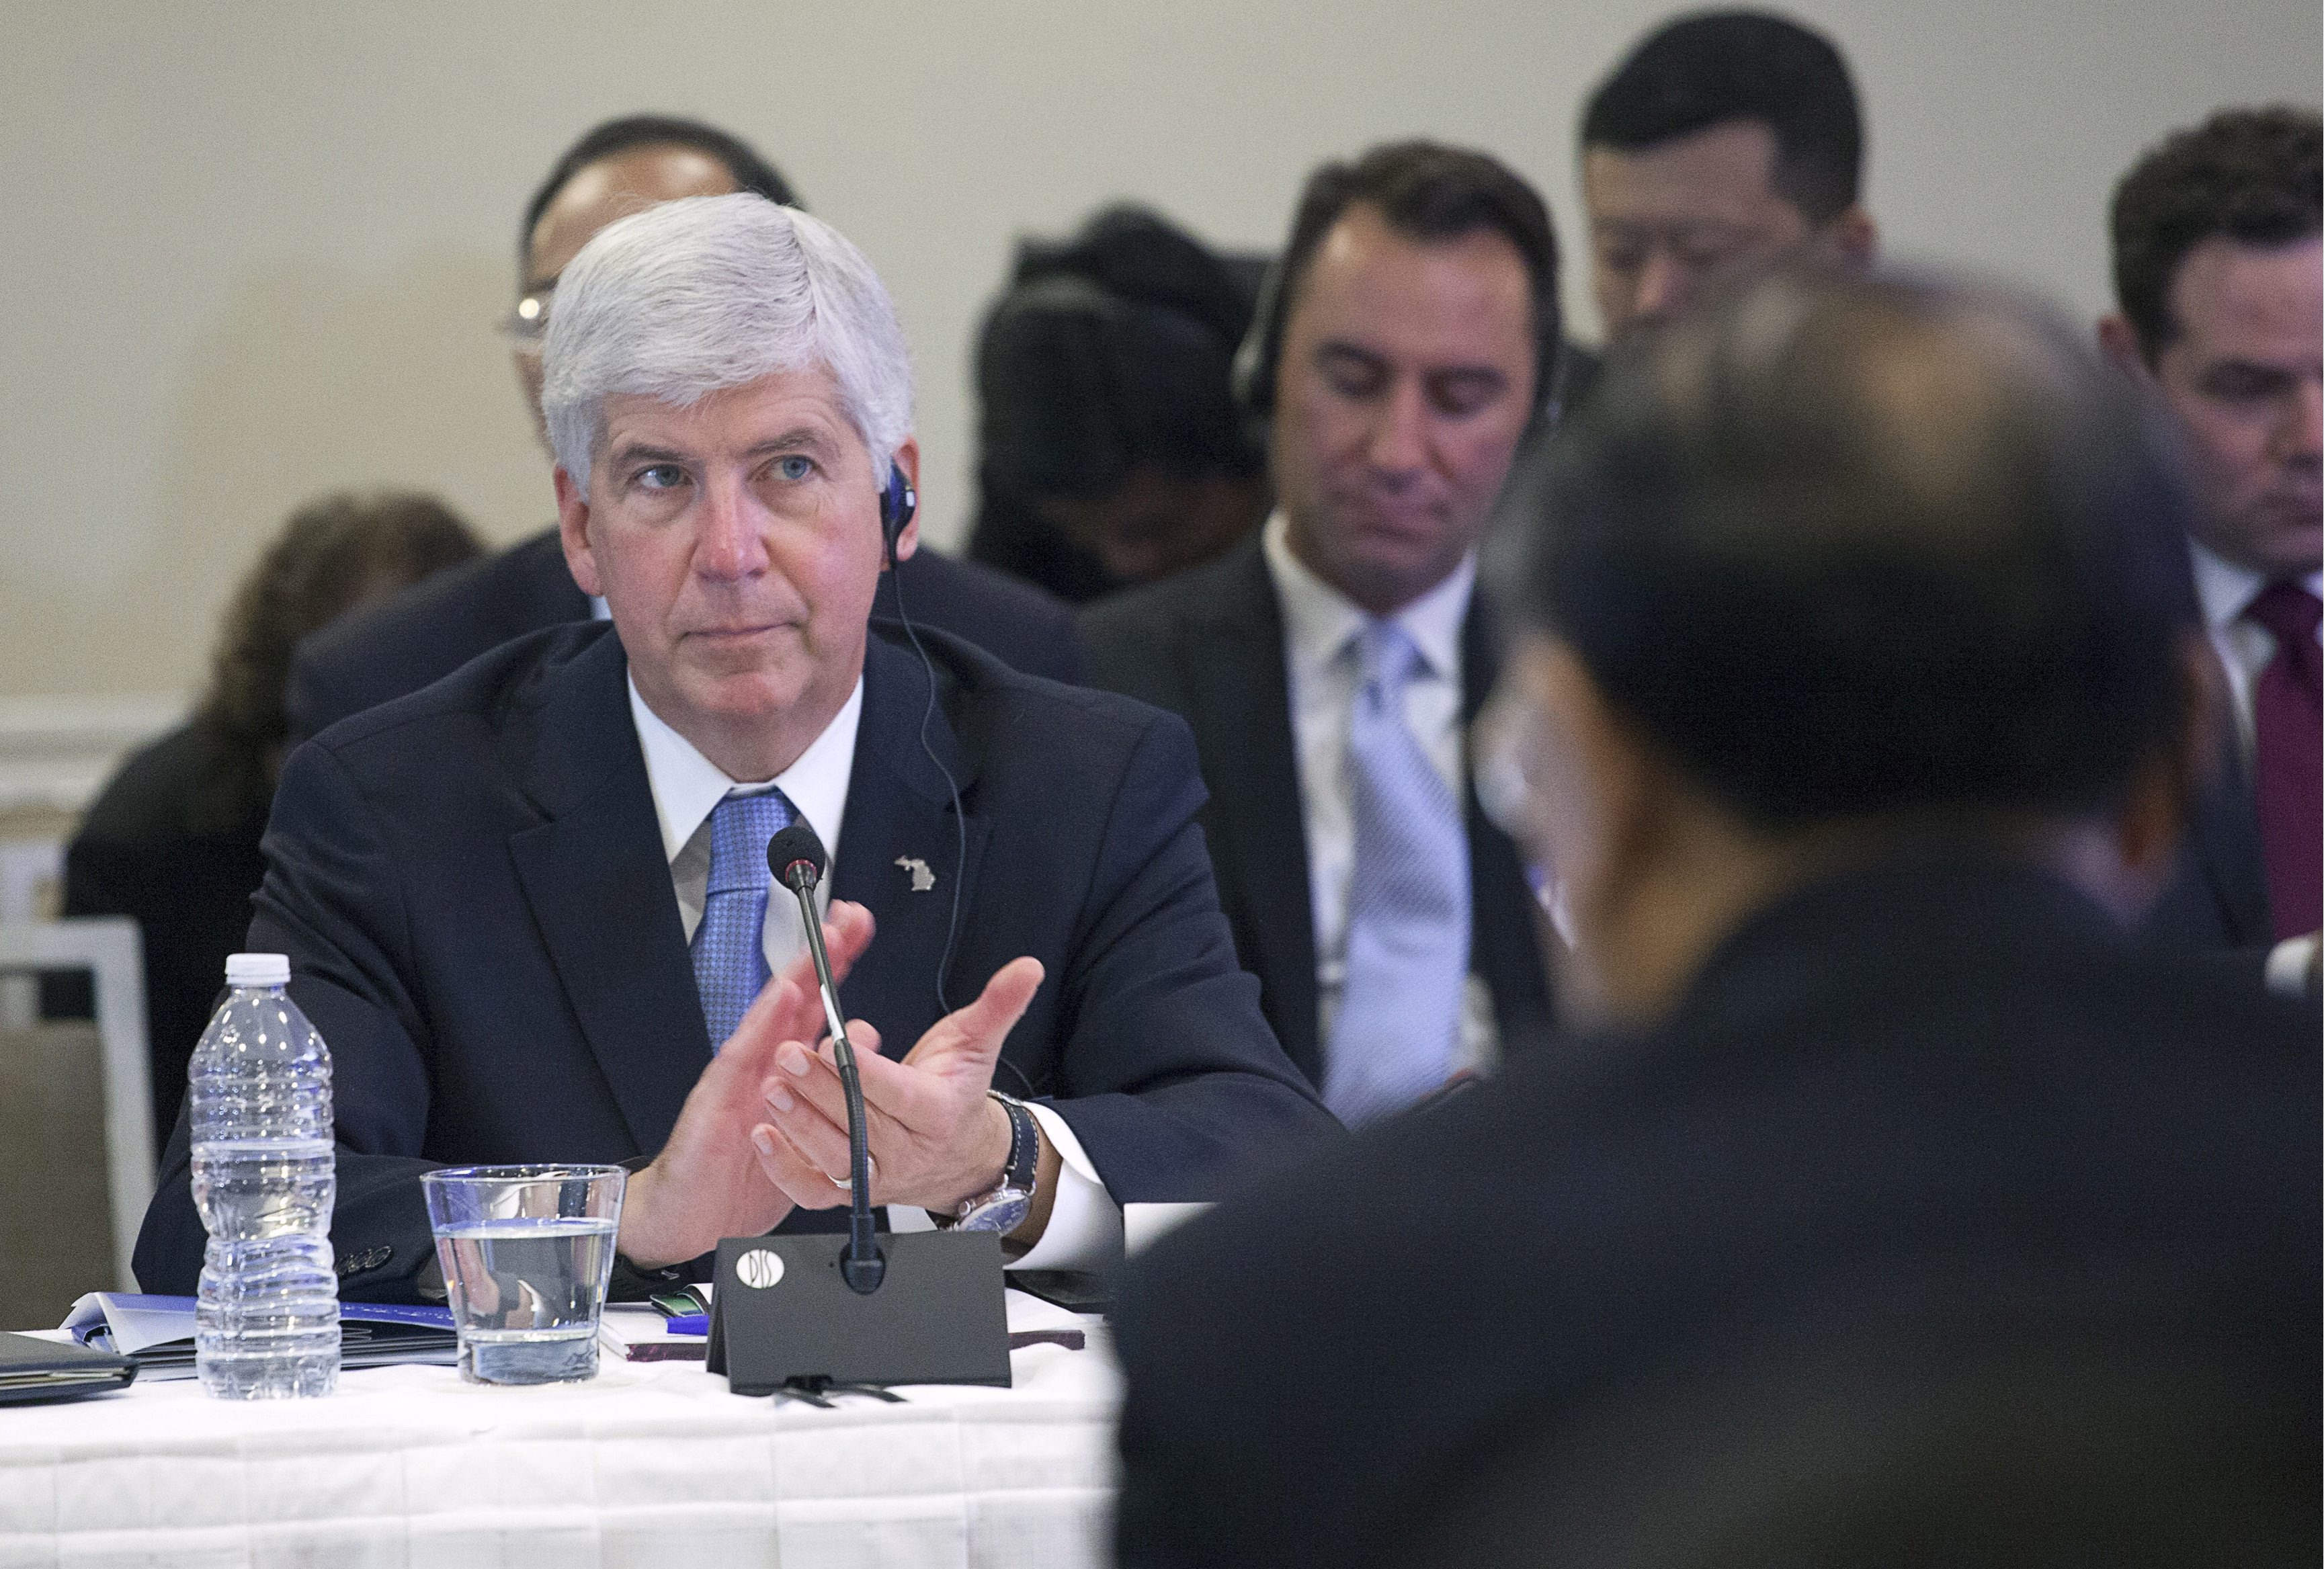 Governor Rick Snyder of Michigan applauds at a meeting with Chinese President Xi Jinping and four other United States governors to discuss clean technology and economic development in Seattle, Washington September 22, 2015. Xi landed in Seattle on Tuesday to kick off a week-long U.S. visit that will include meetings with U.S. business leaders, a black-tie state dinner at the White House hosted by President Barack Obama and an address at the United Nations. REUTERS/Matt Mills McKnightCODE: X02902